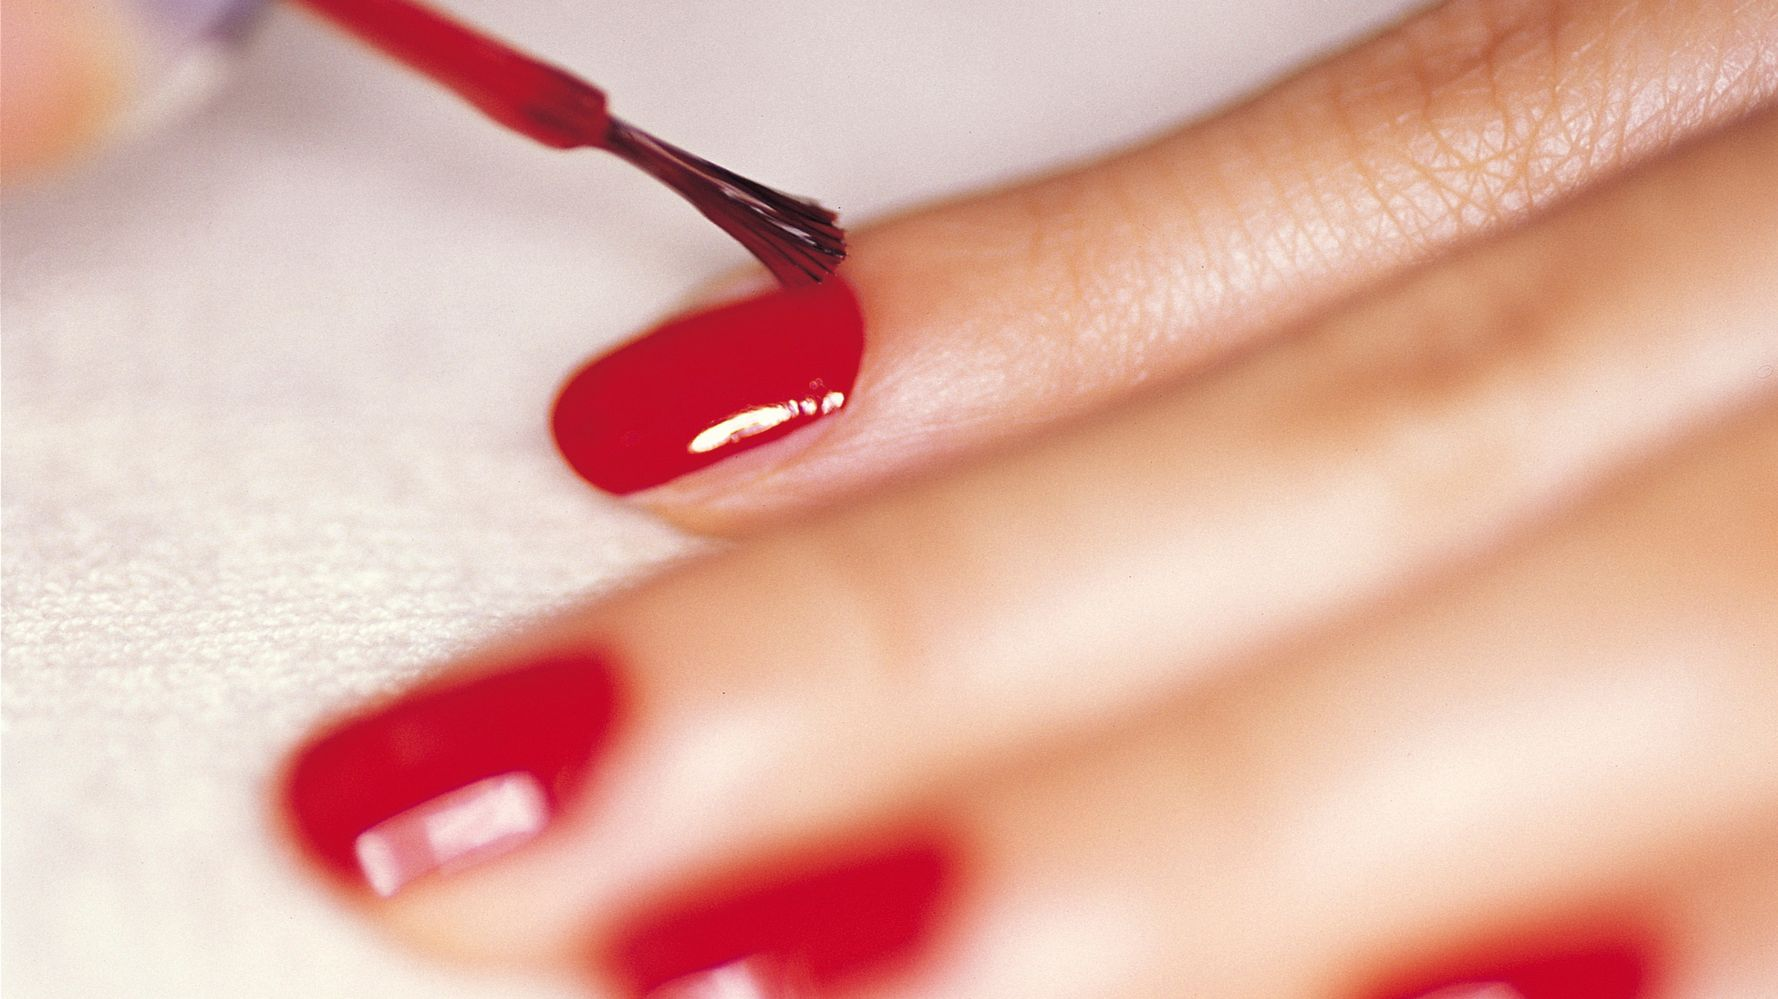 Yes, Chemicals In Nail Polish Can Leach Into Your Body